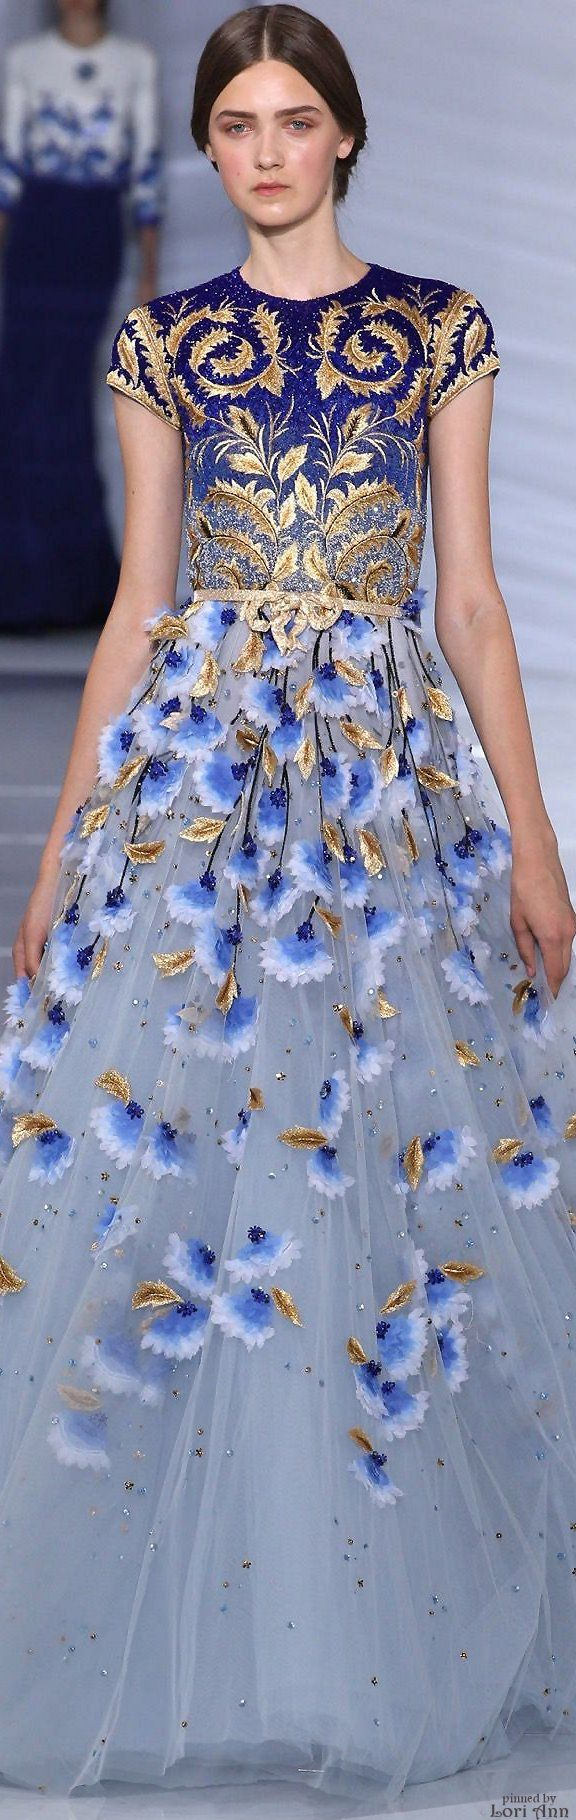 Georges Hobeika Couture Fall 2015 long dress in blue, gold, and white with flowers and leaves